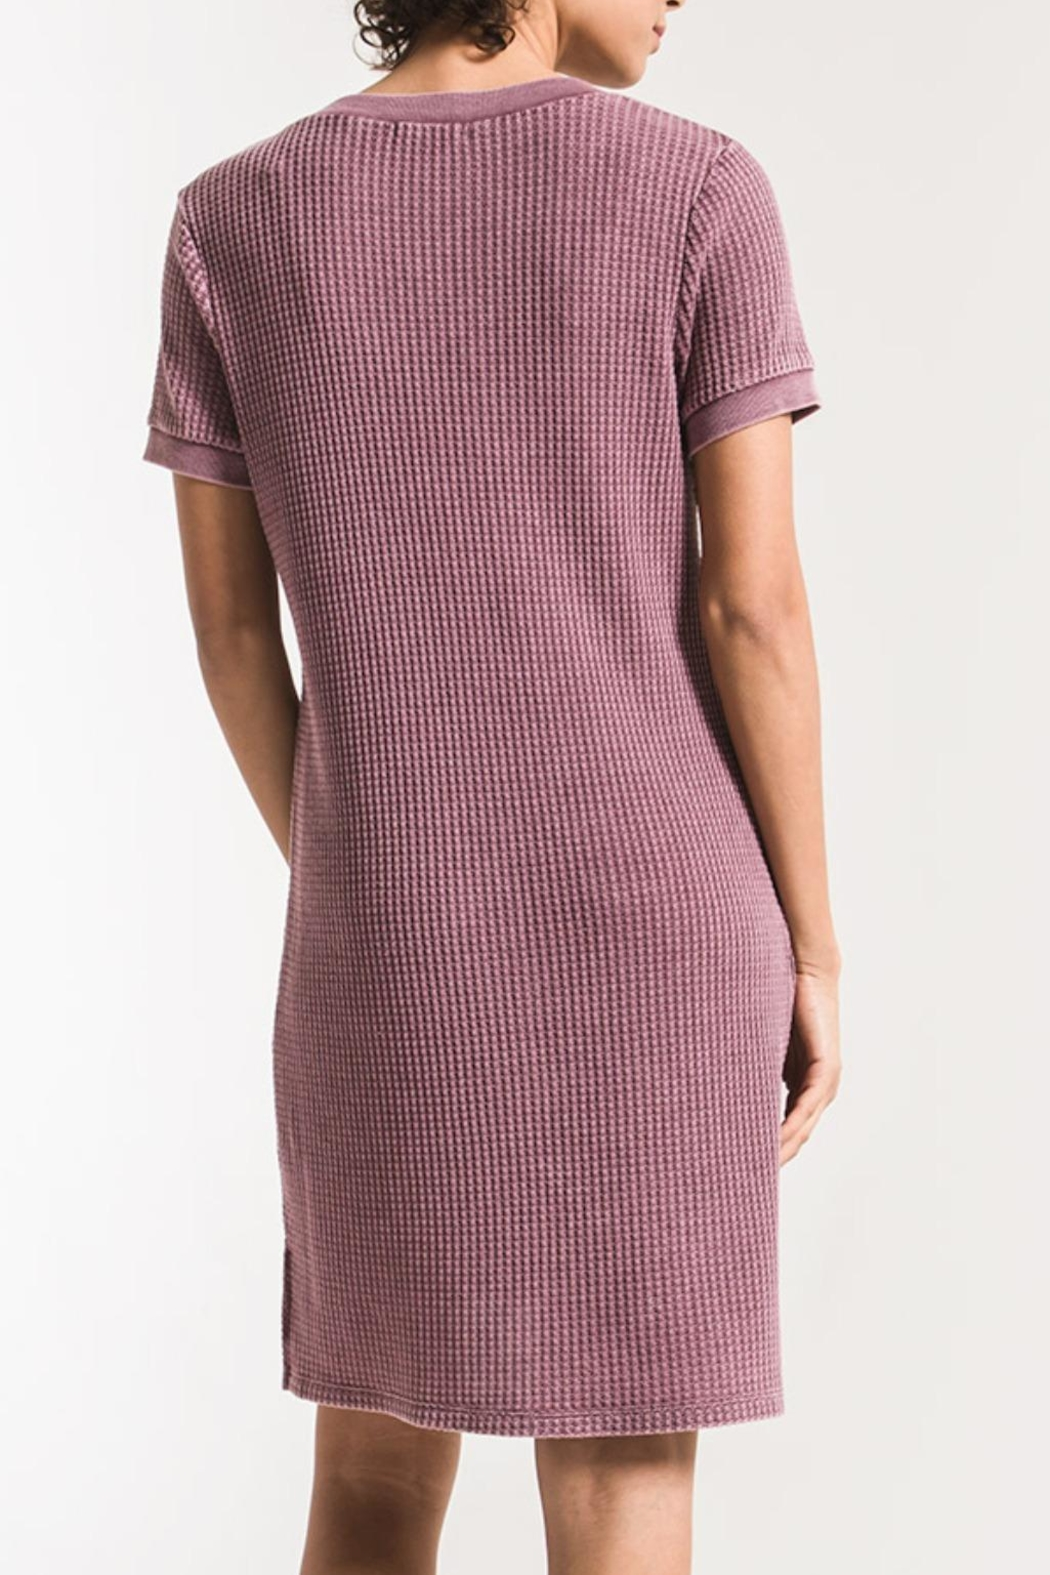 z supply Aster Thermal Dress - Front Full Image